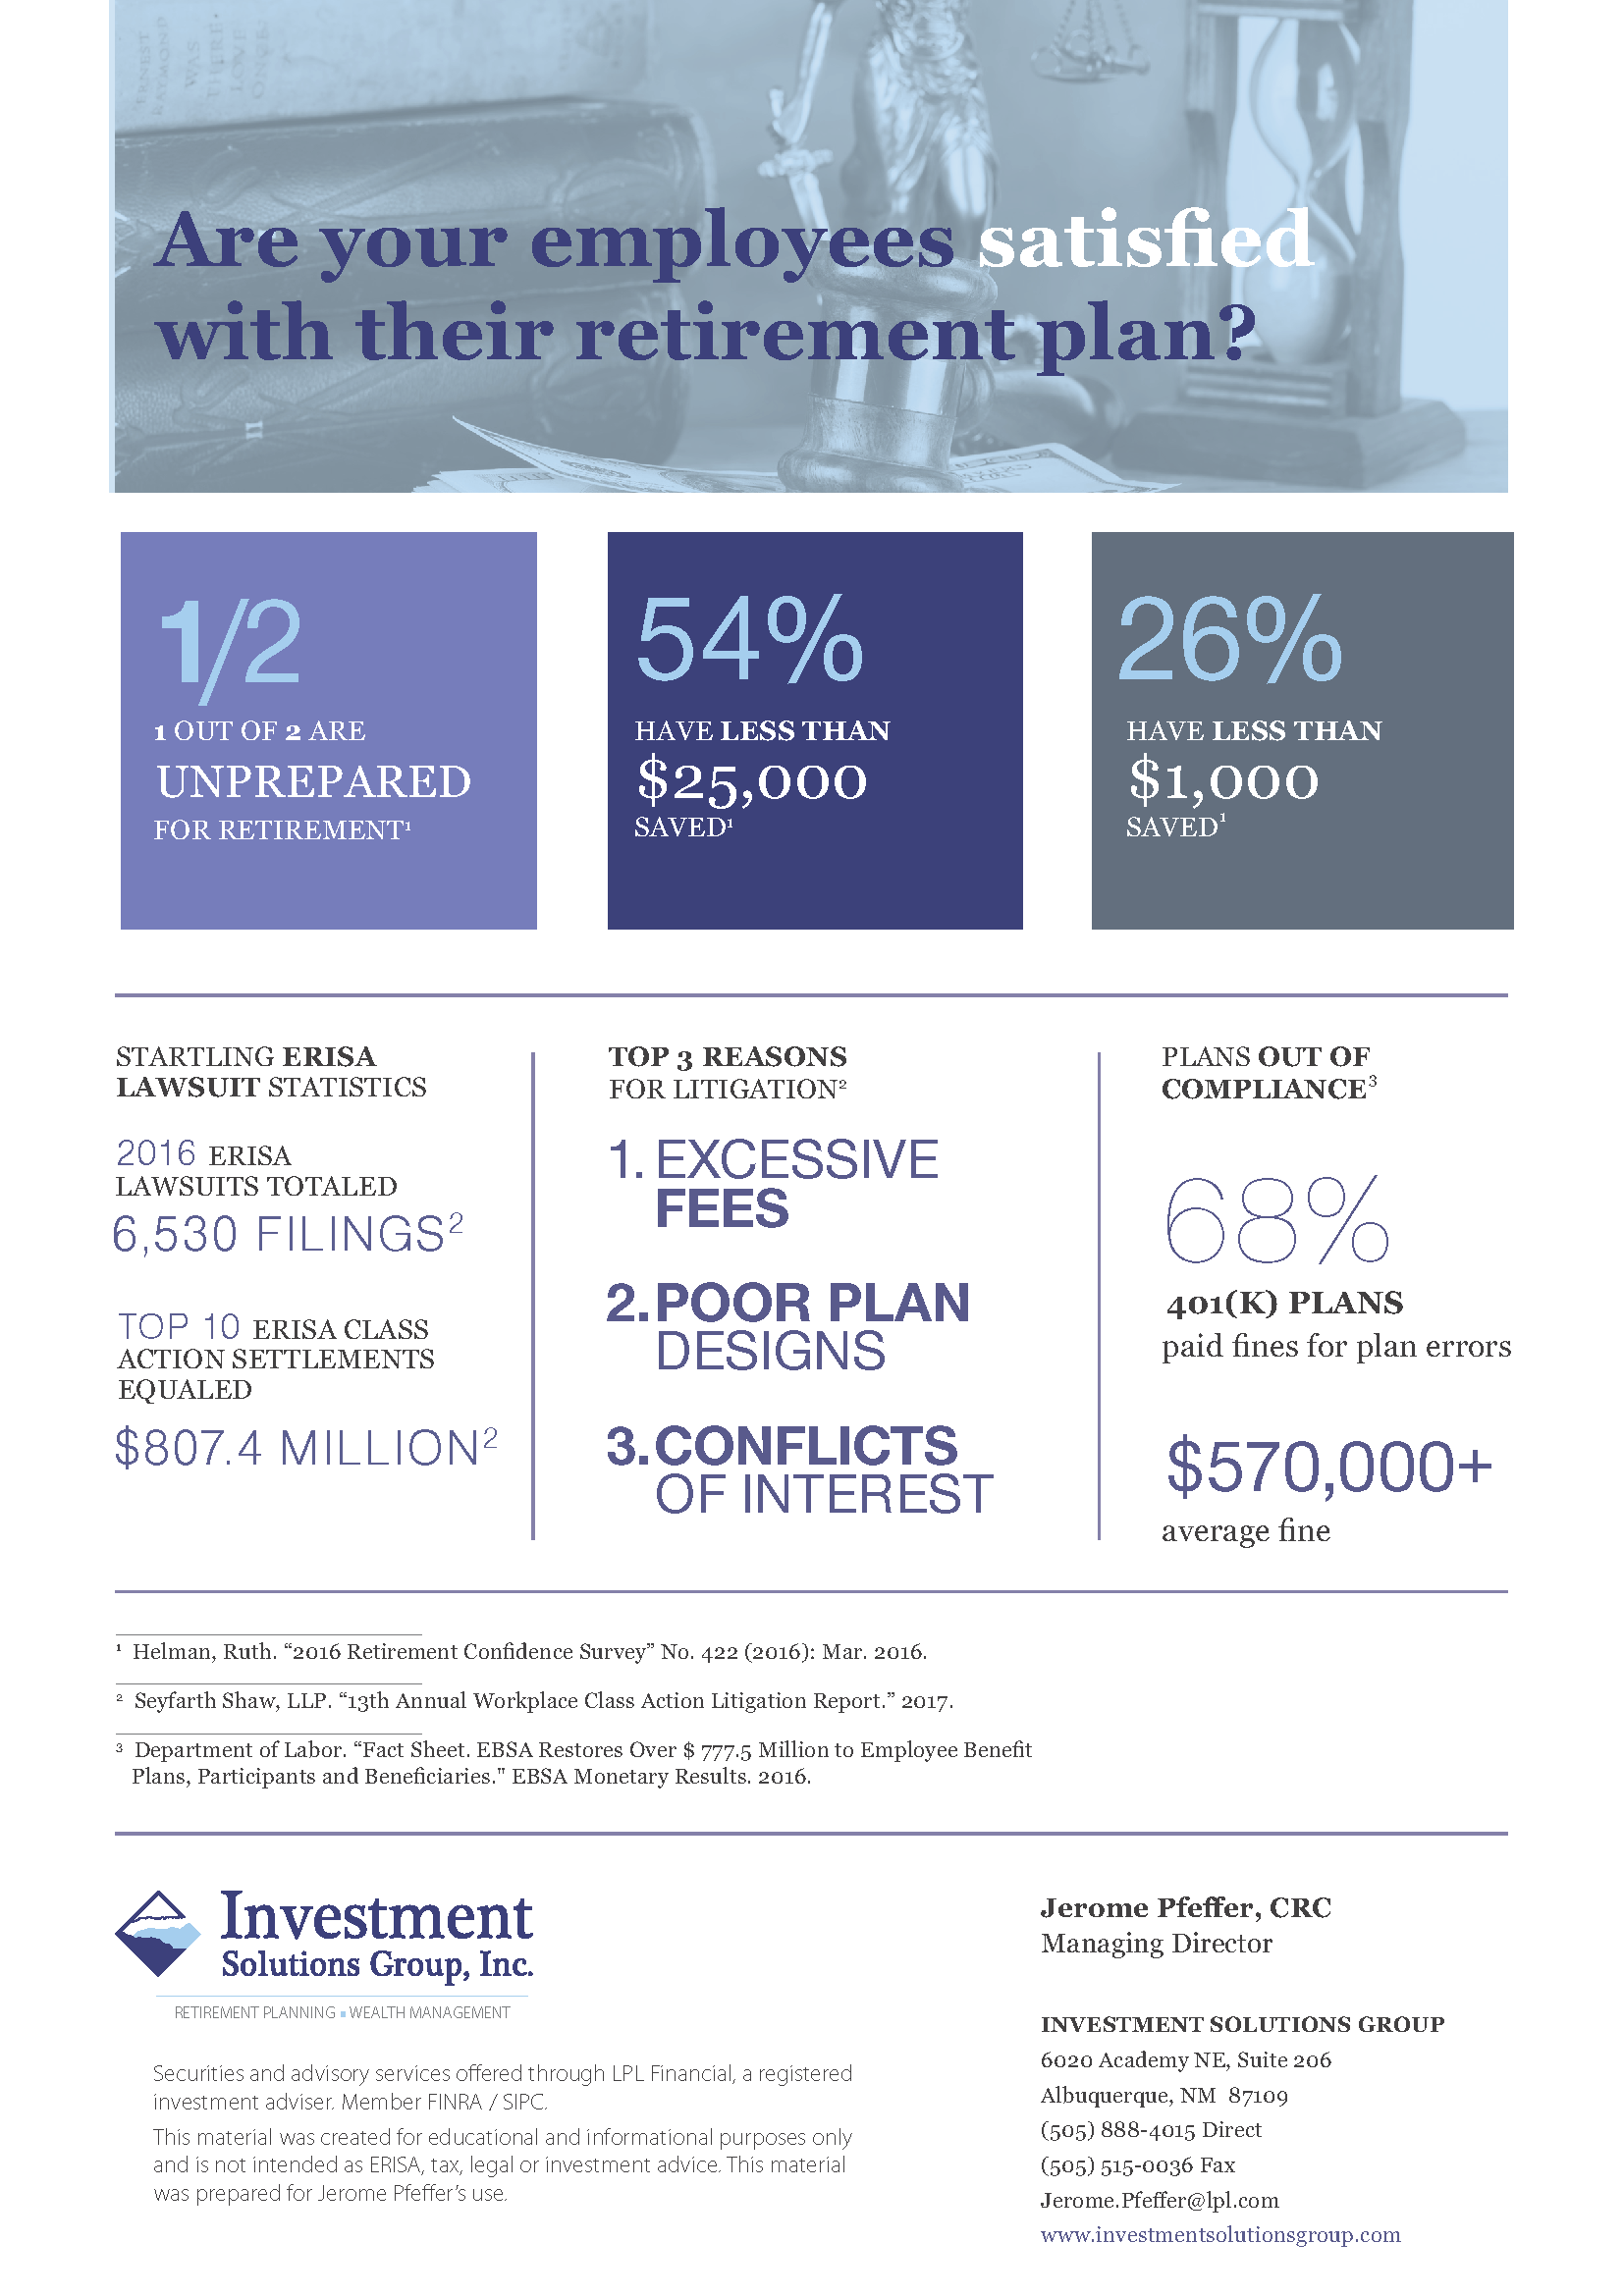 Investment policy statements for 401k plans - Are Your Employees Satisfied With Their 401k Plan